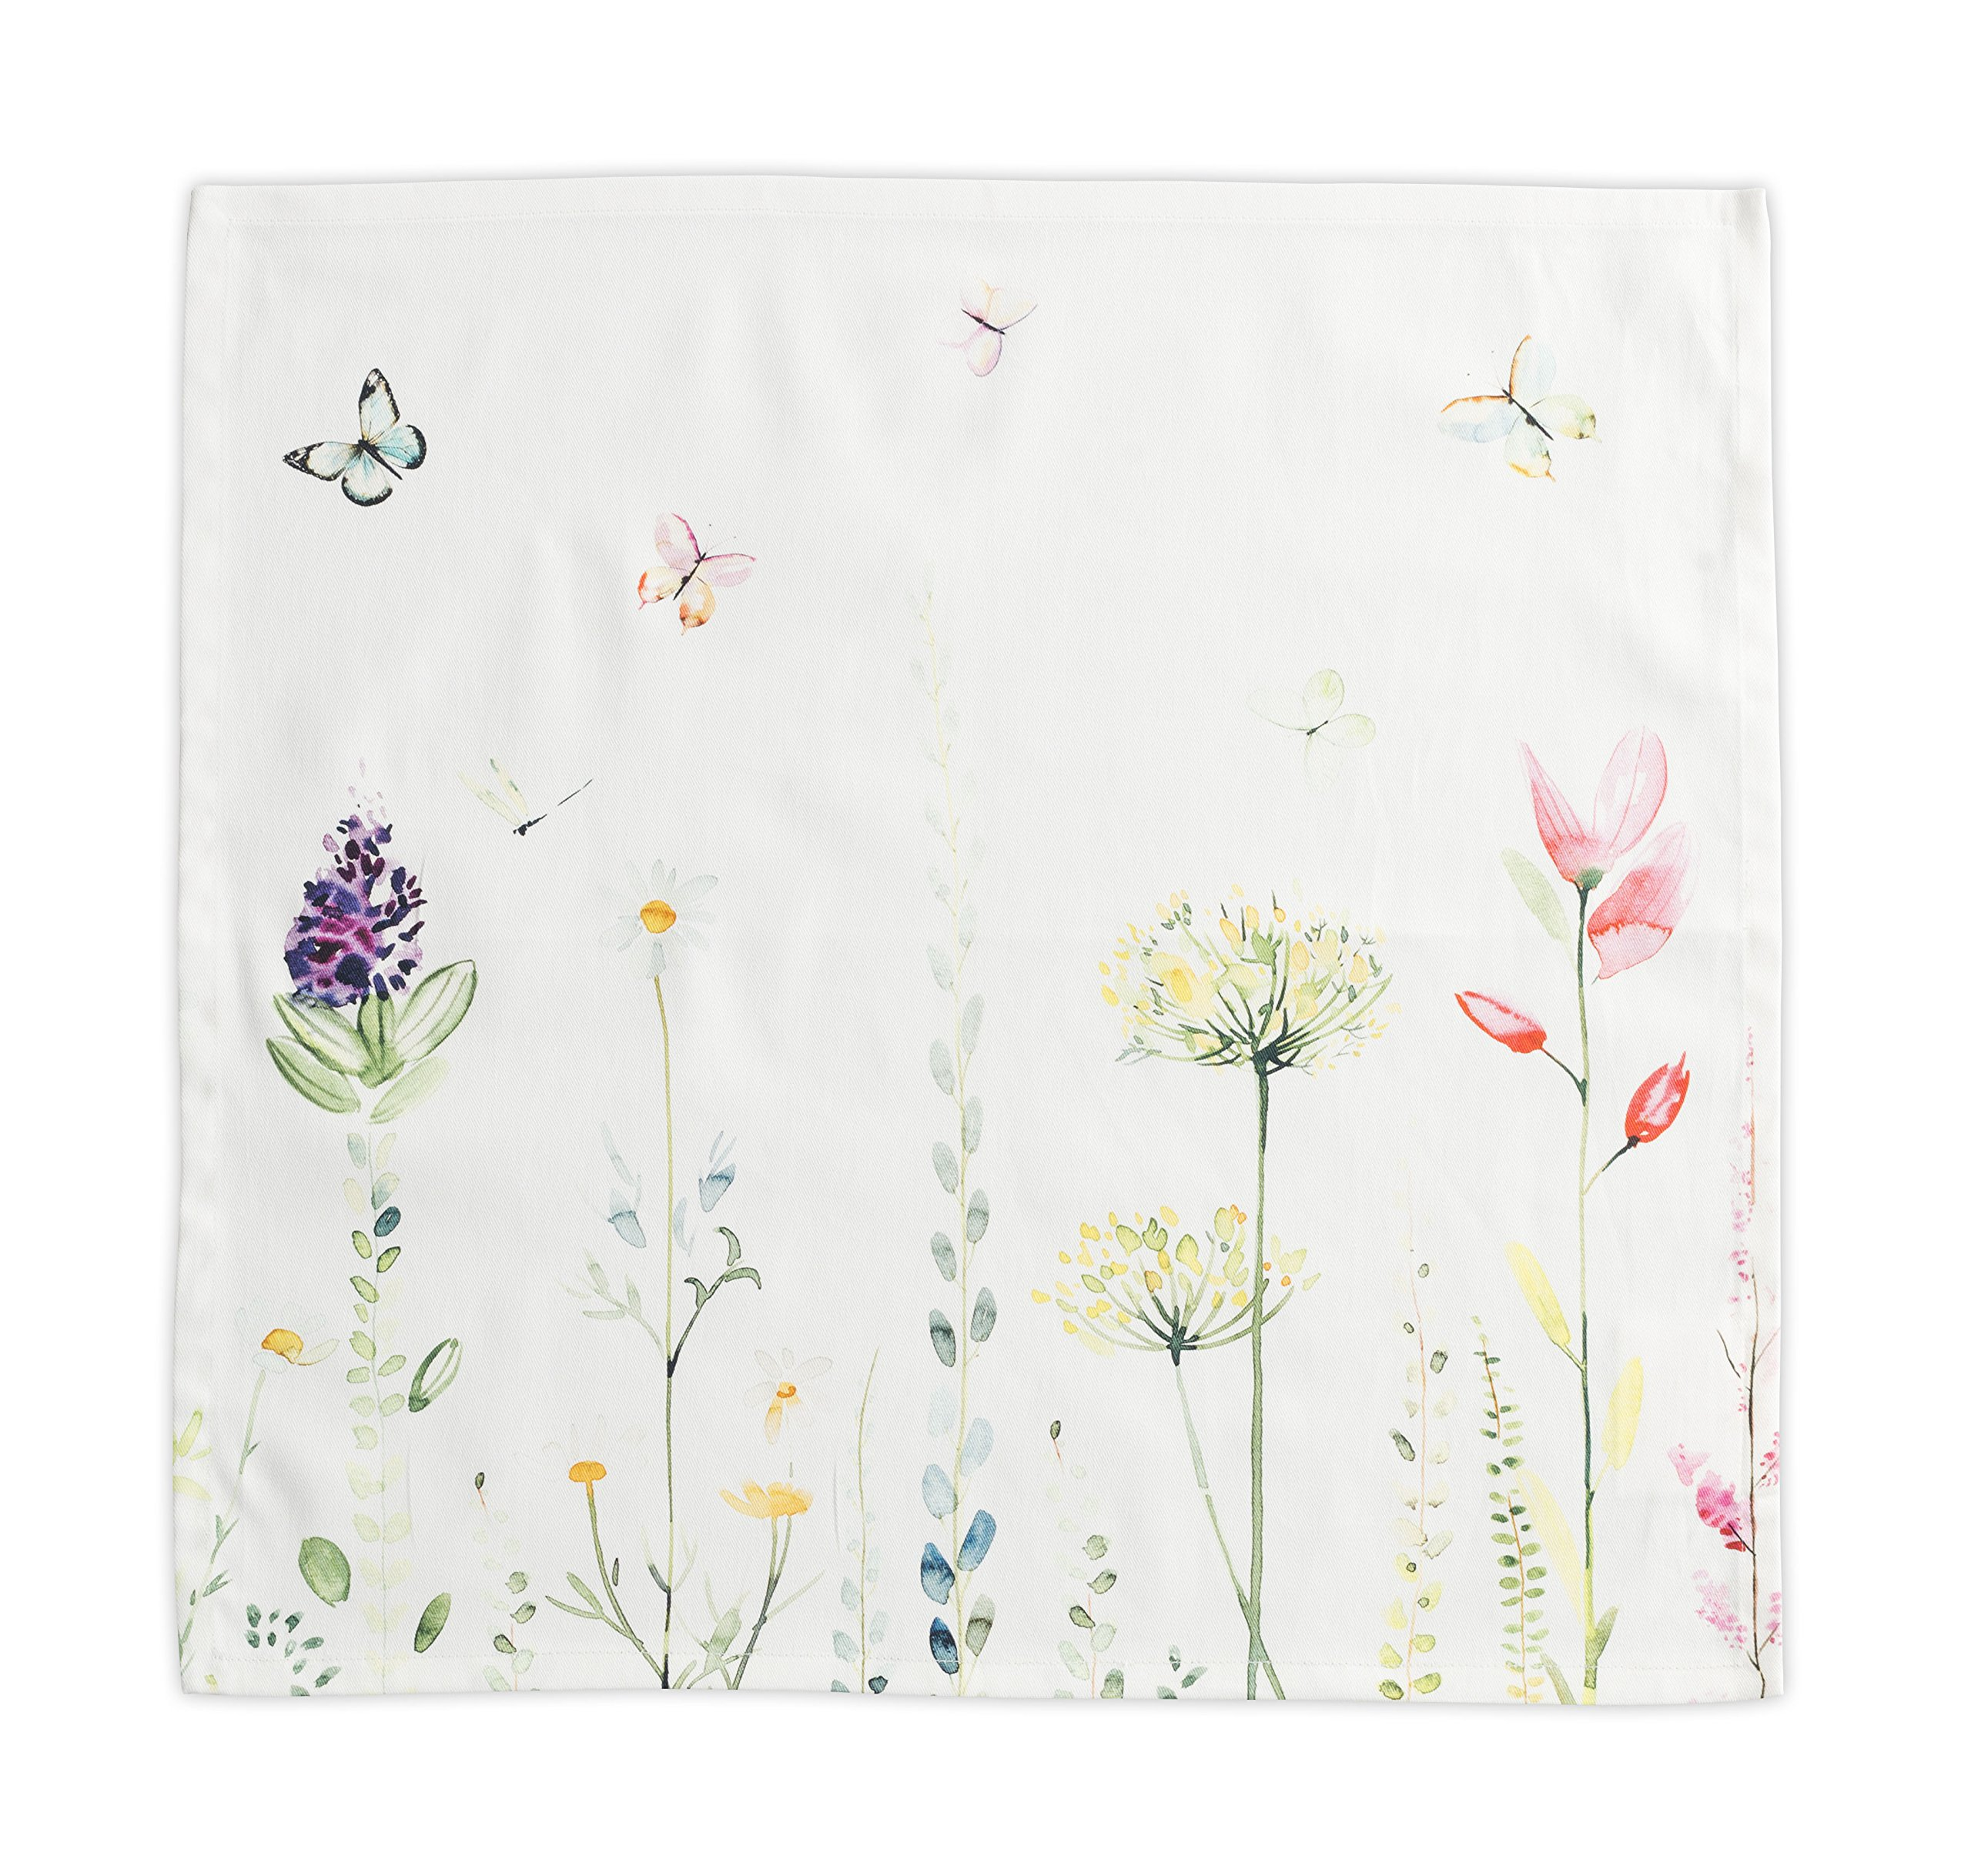 Maison d' Hermine Botanical Fresh 100% Cotton Set of 4 Napkins 20 Inch by 20 Inch